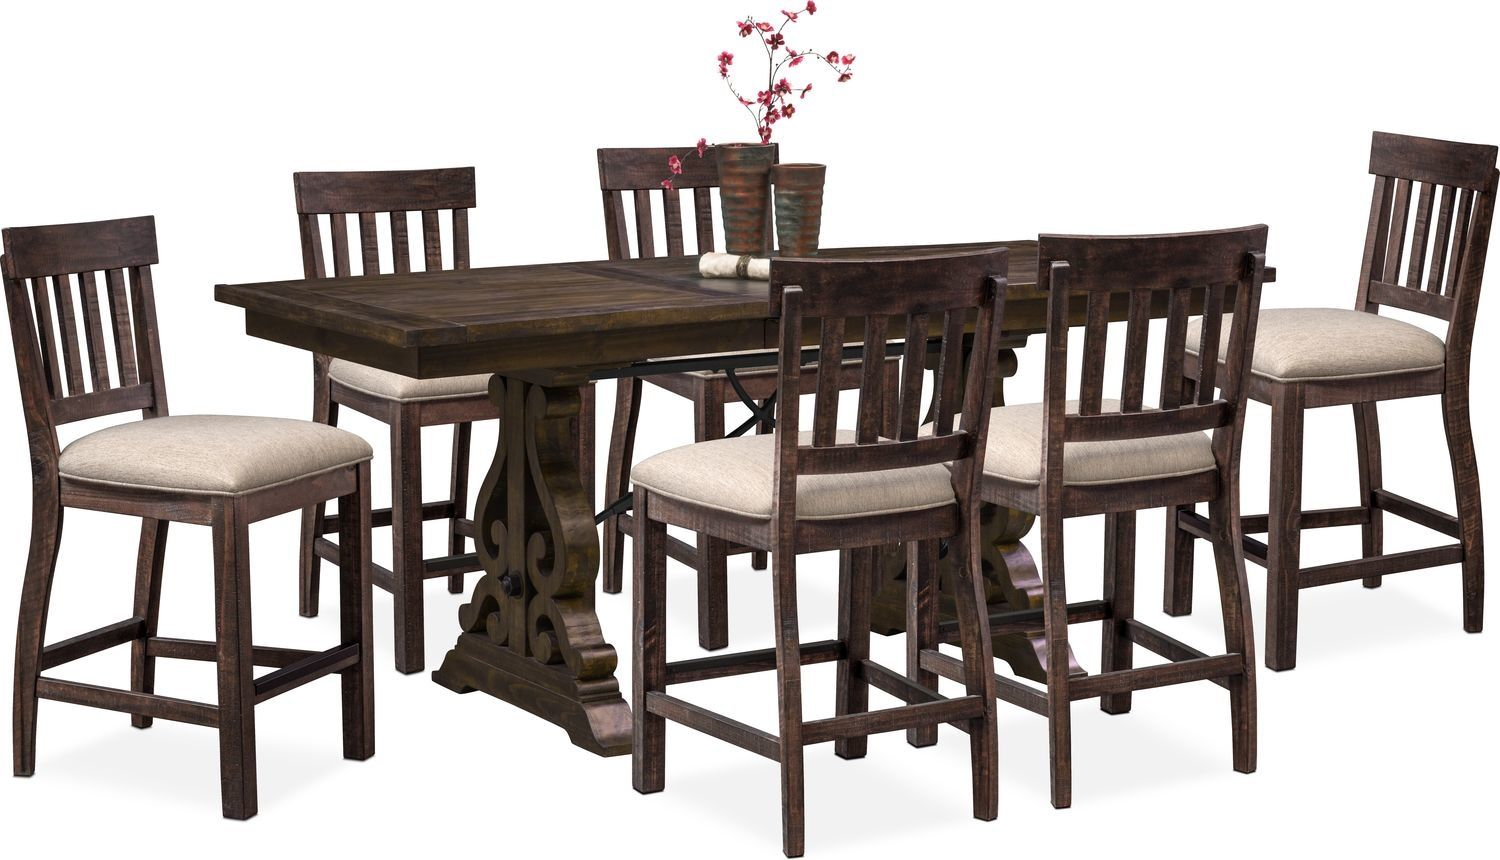 Charthouse Counter Height Dining Table And 6 Stools Counter